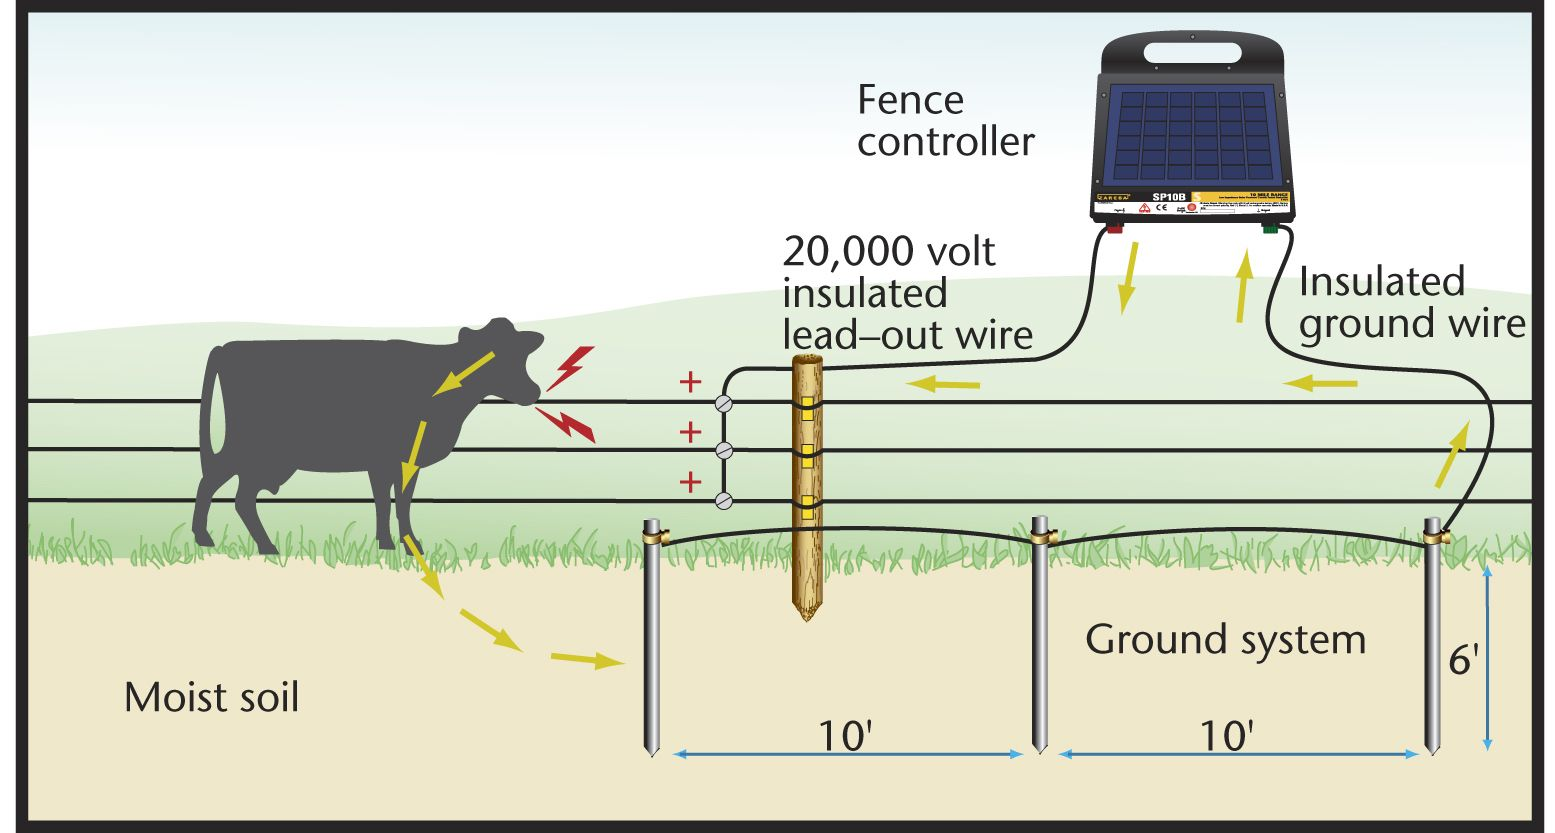 The grounding circuit is a critical component of your electric fence on electric fence circuit, electric fence ignition coil, solar electric fence installation diagram, electric fence cover, electric fence guide, electric fence controls, electric fence capacitor, electric dog fence, electric fence accessories, electric fence schematic, electric fence grounding diagram, electric fence generator, electric fence wire, electric fence lightning diverters, electric fence safety, electric fence parts diagram, electric fence battery, electric fence for goats, fence charger diagram, electromagnet circuit diagram,